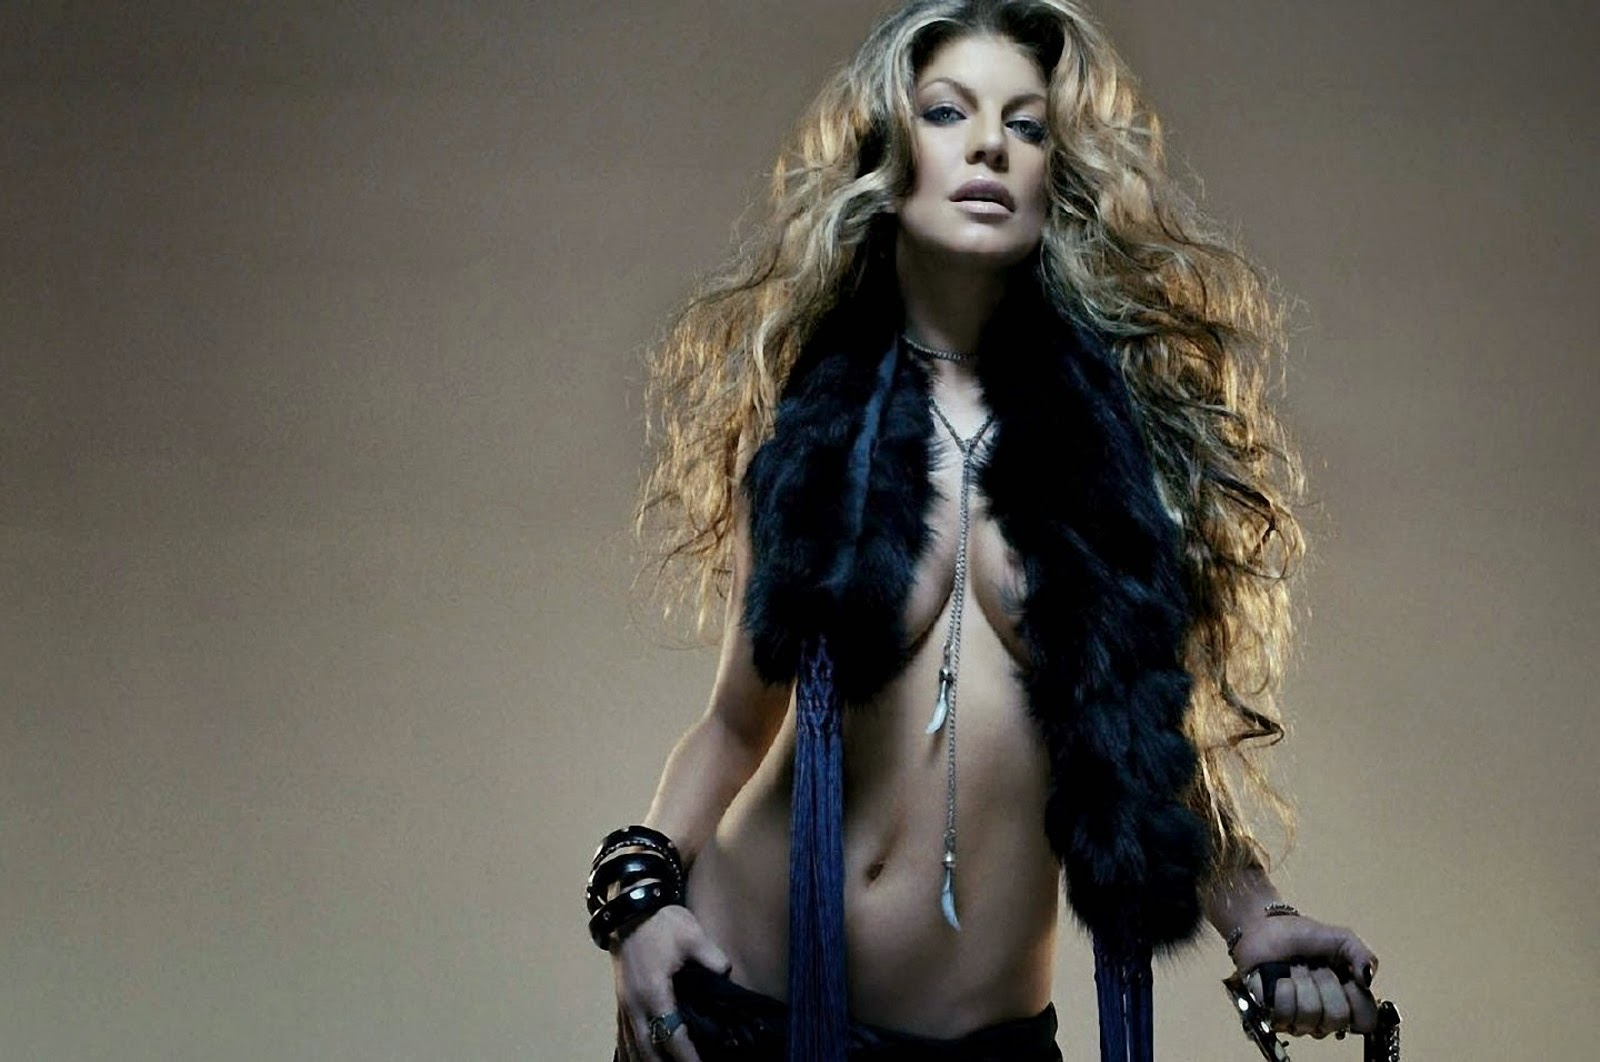 Fergie black eyed peas topless, xxxhot college girls nude pictures